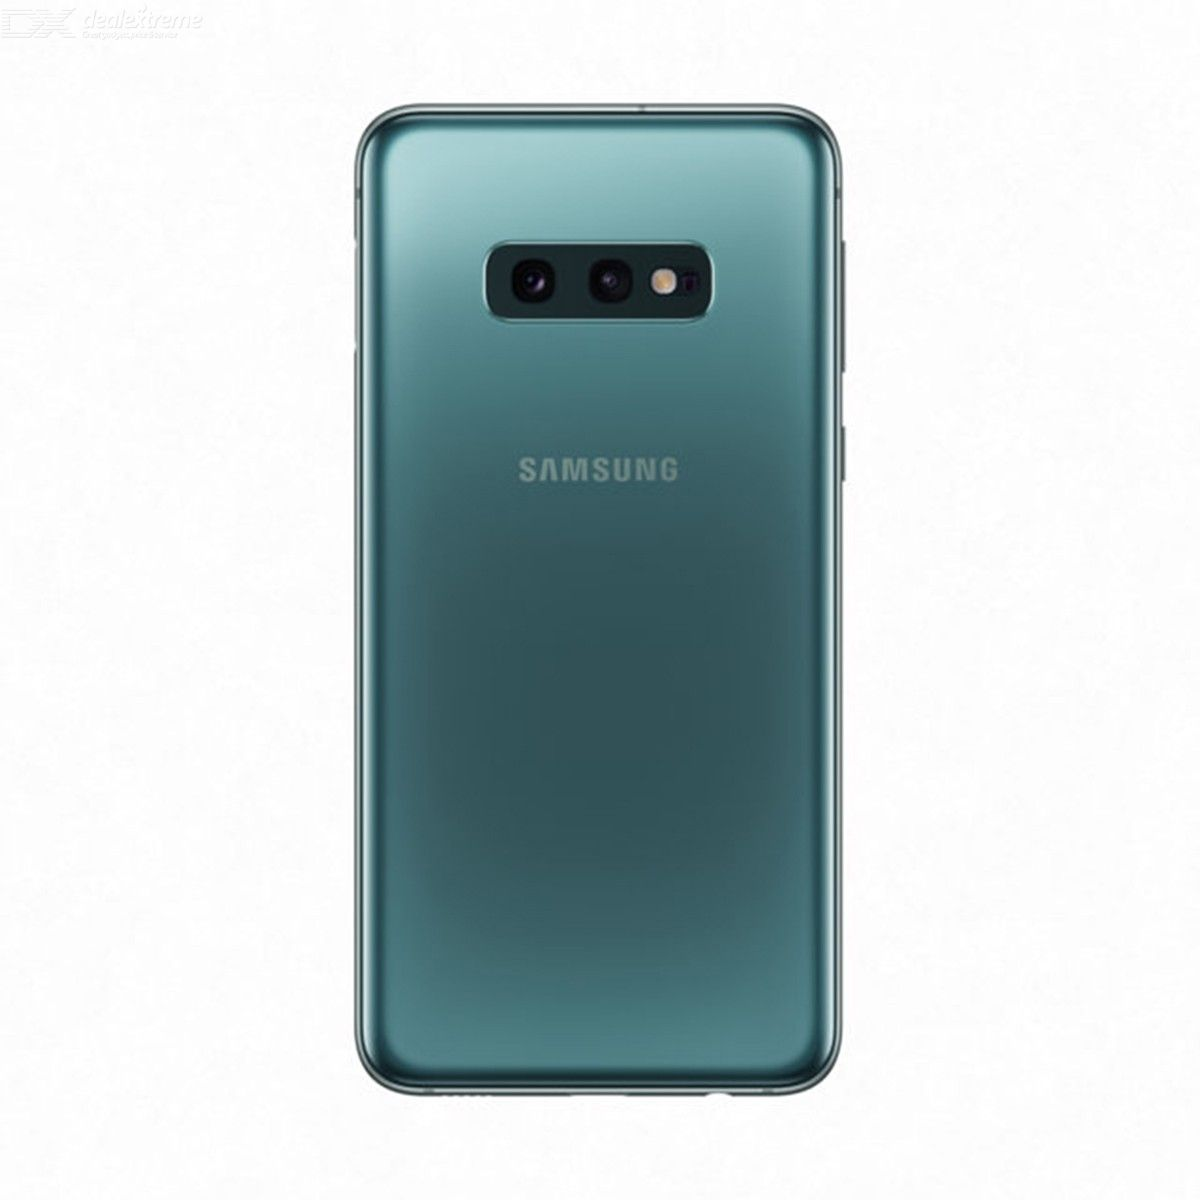 Samsung Galaxy S10e G970FD 5.8 Inch Smart Phone Octa Core 12MP + 10MP Camera 6GB RAM 128GB ROM - EU Plug